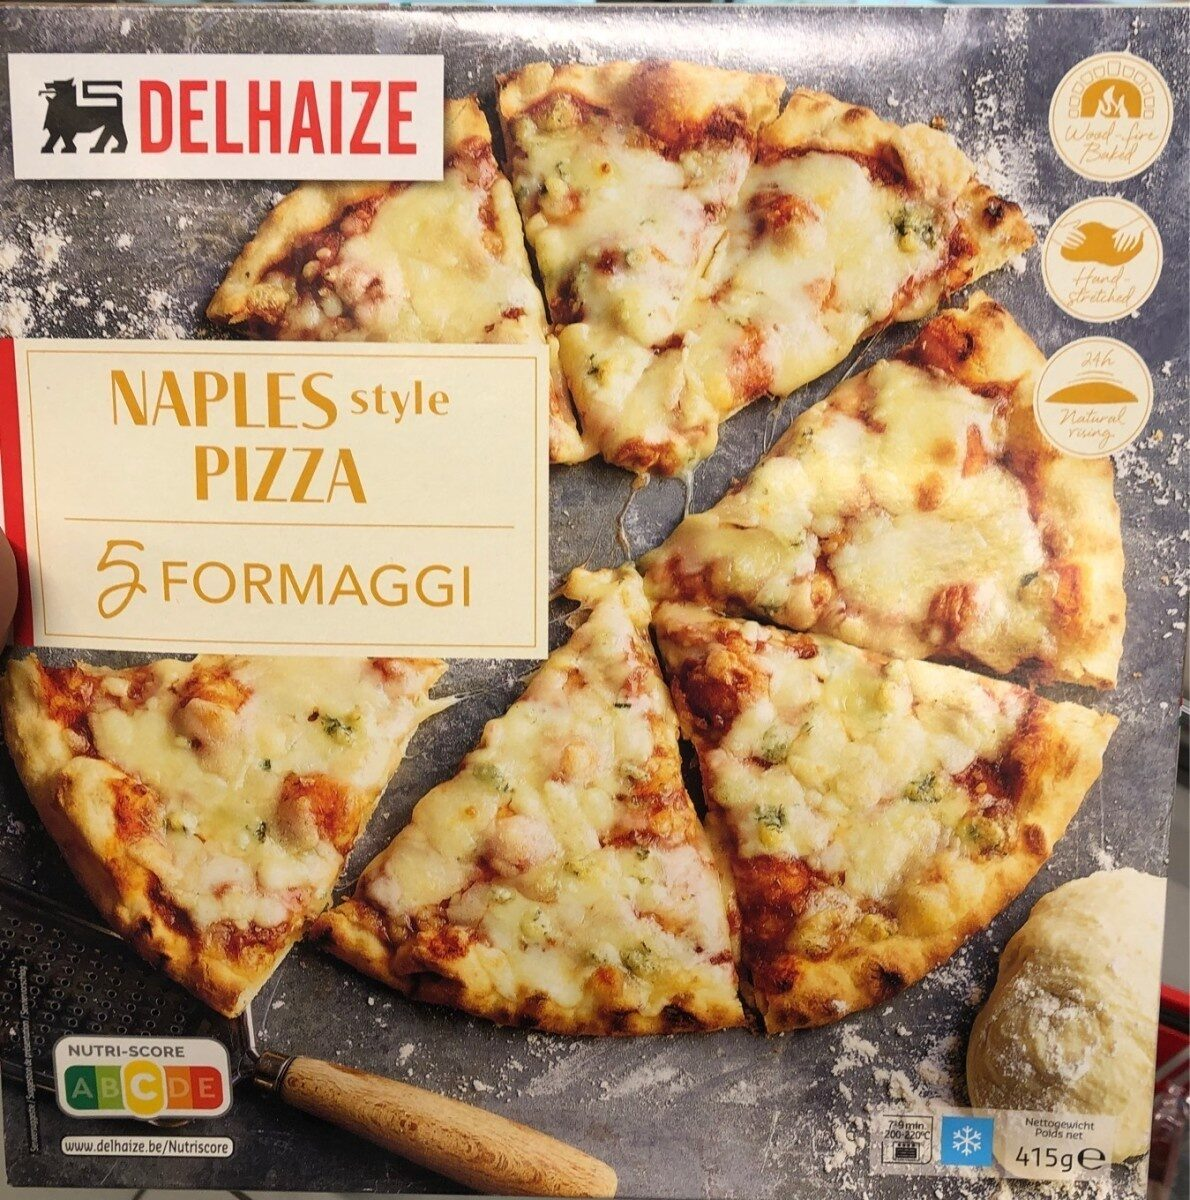 Naples style pizza 5 fromaggi - Product - fr